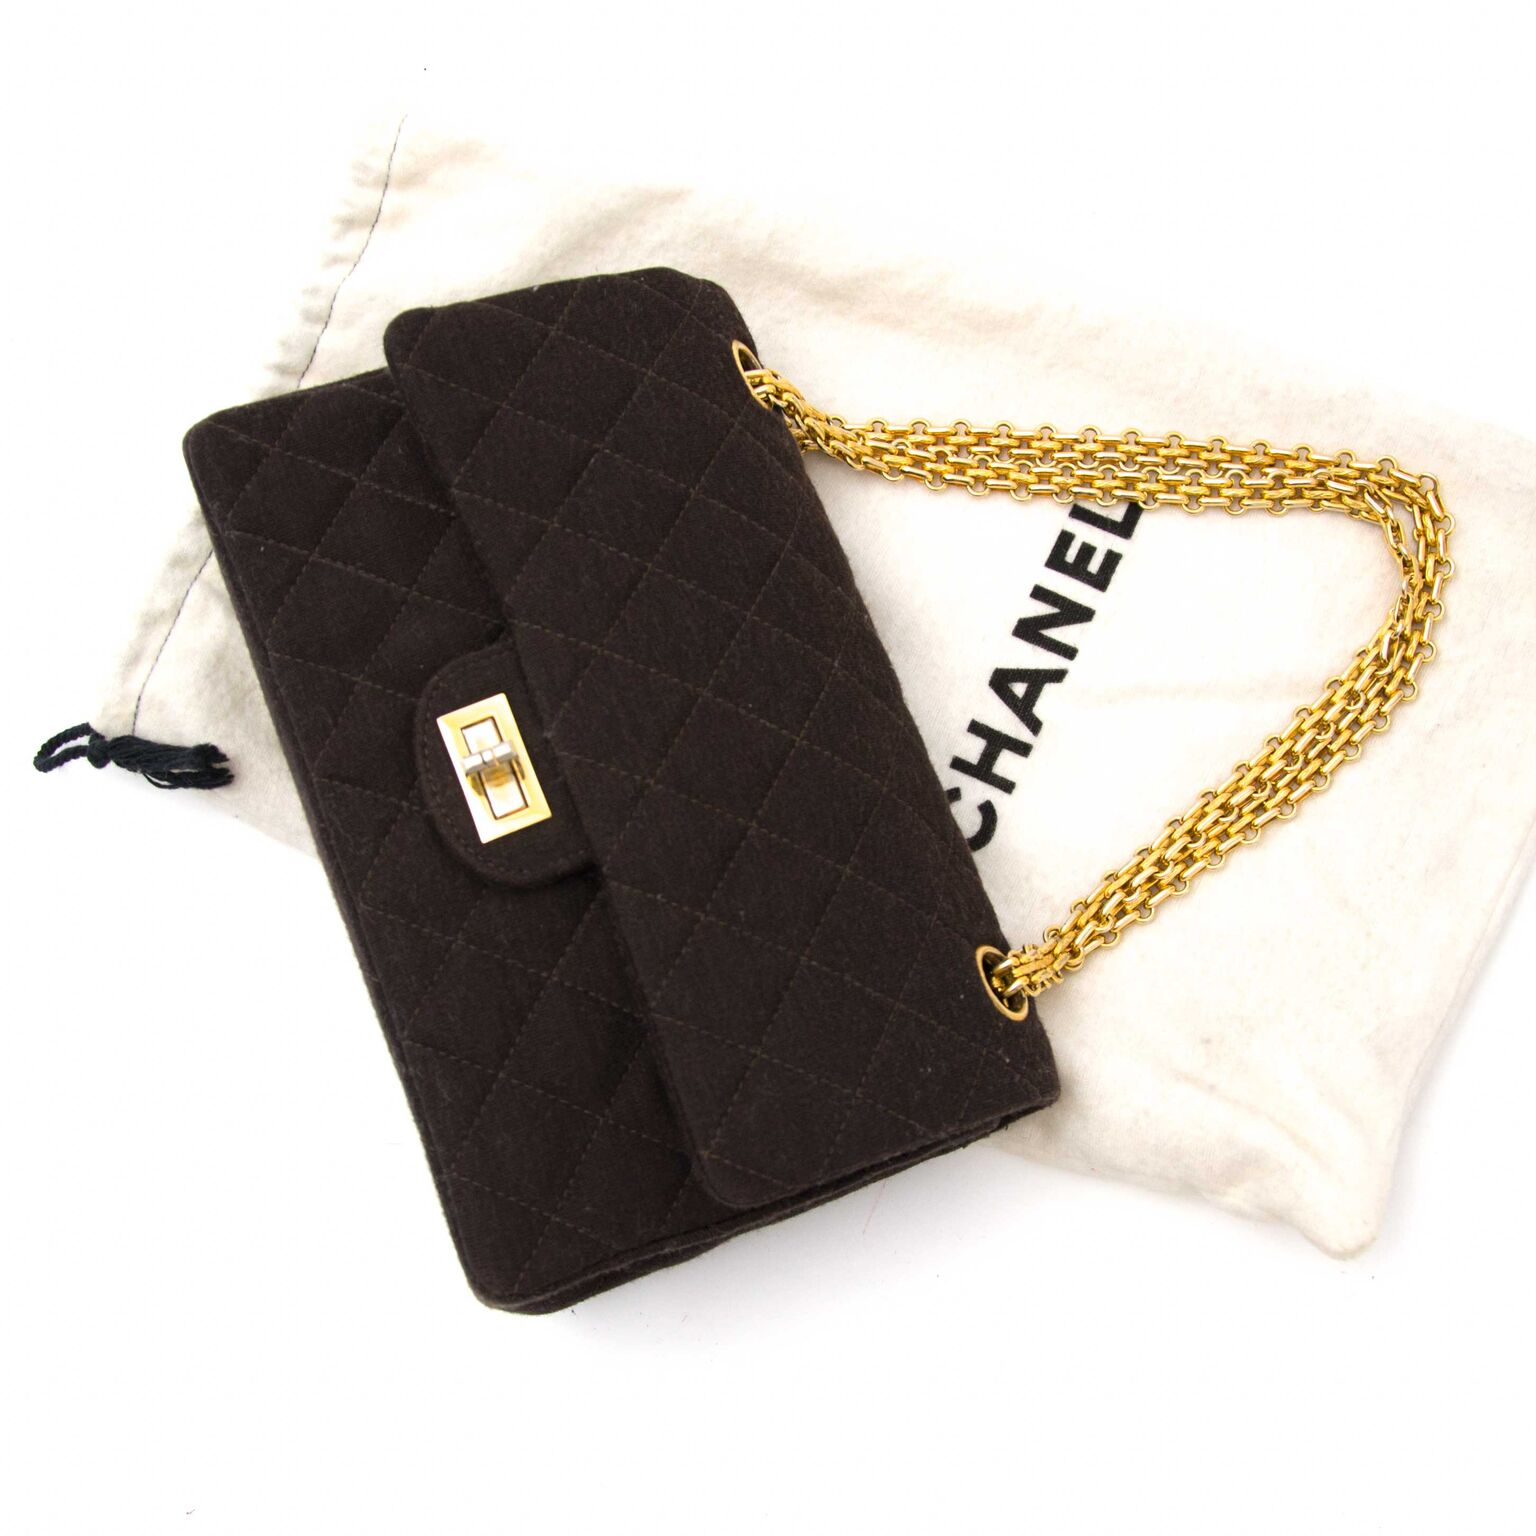 Buy now vintage Chanel handbags on labellov.com